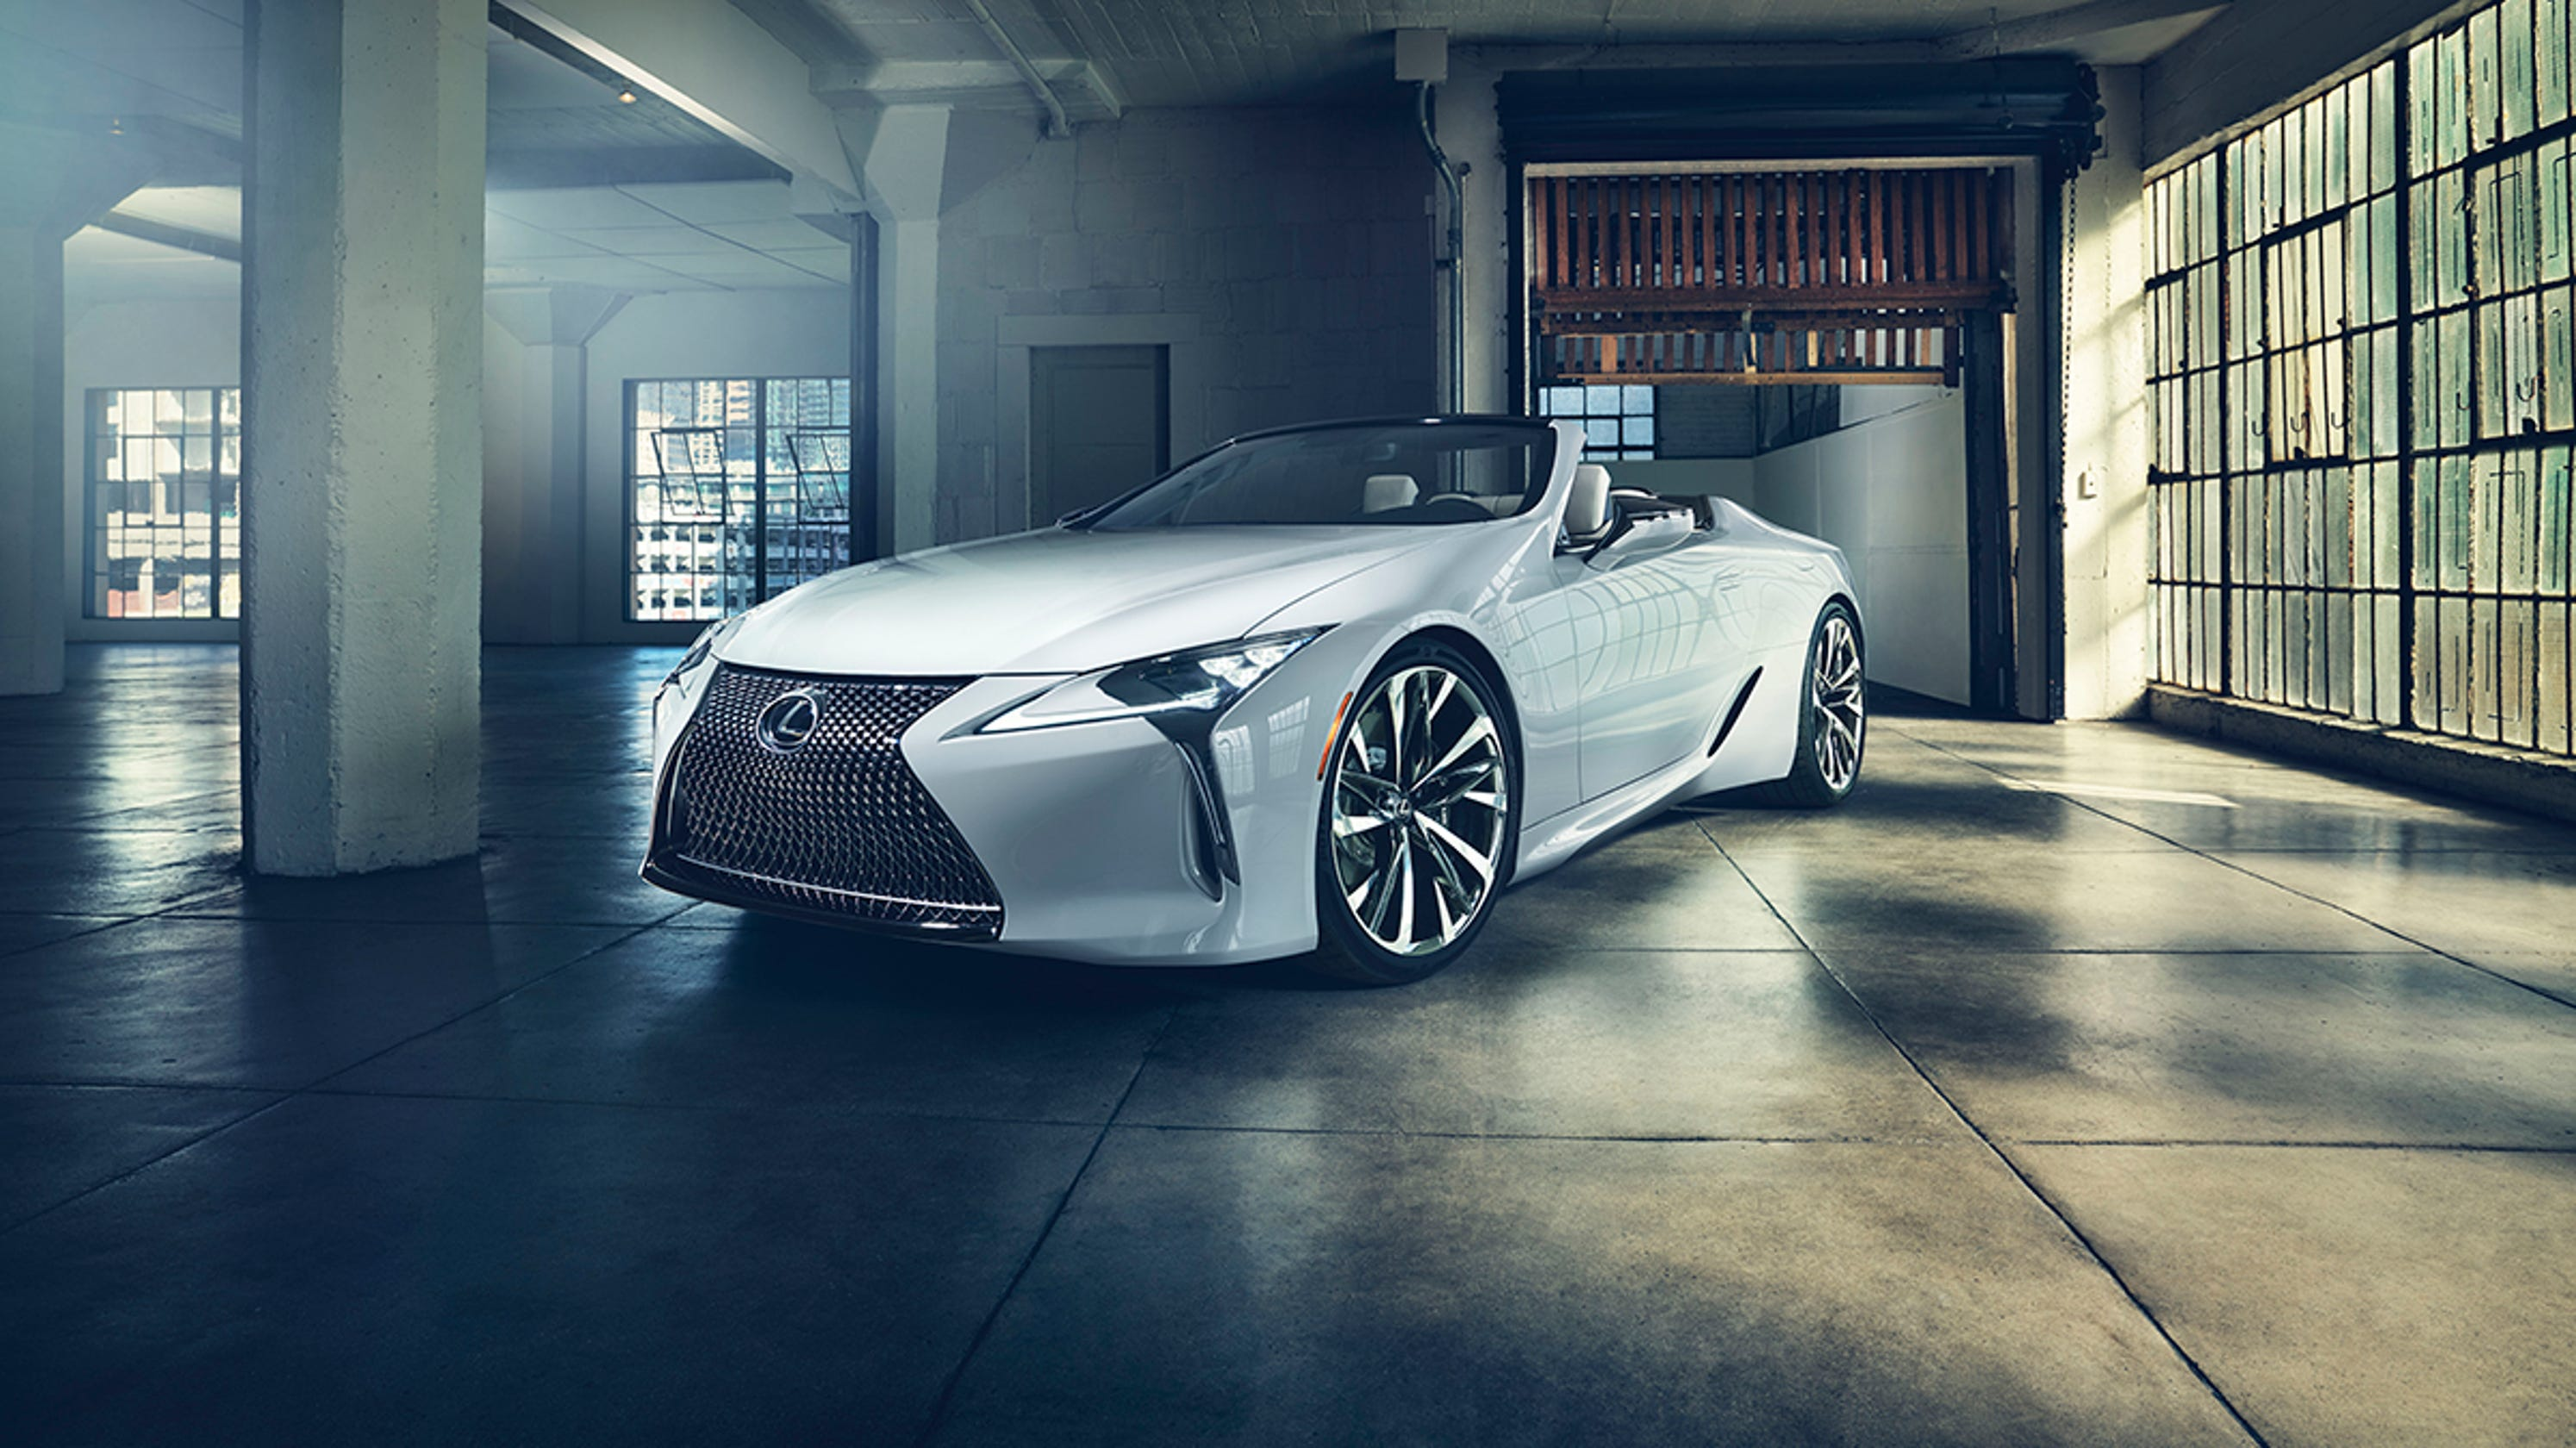 show at auto Detroit luxury unveils Lexus concept convertible